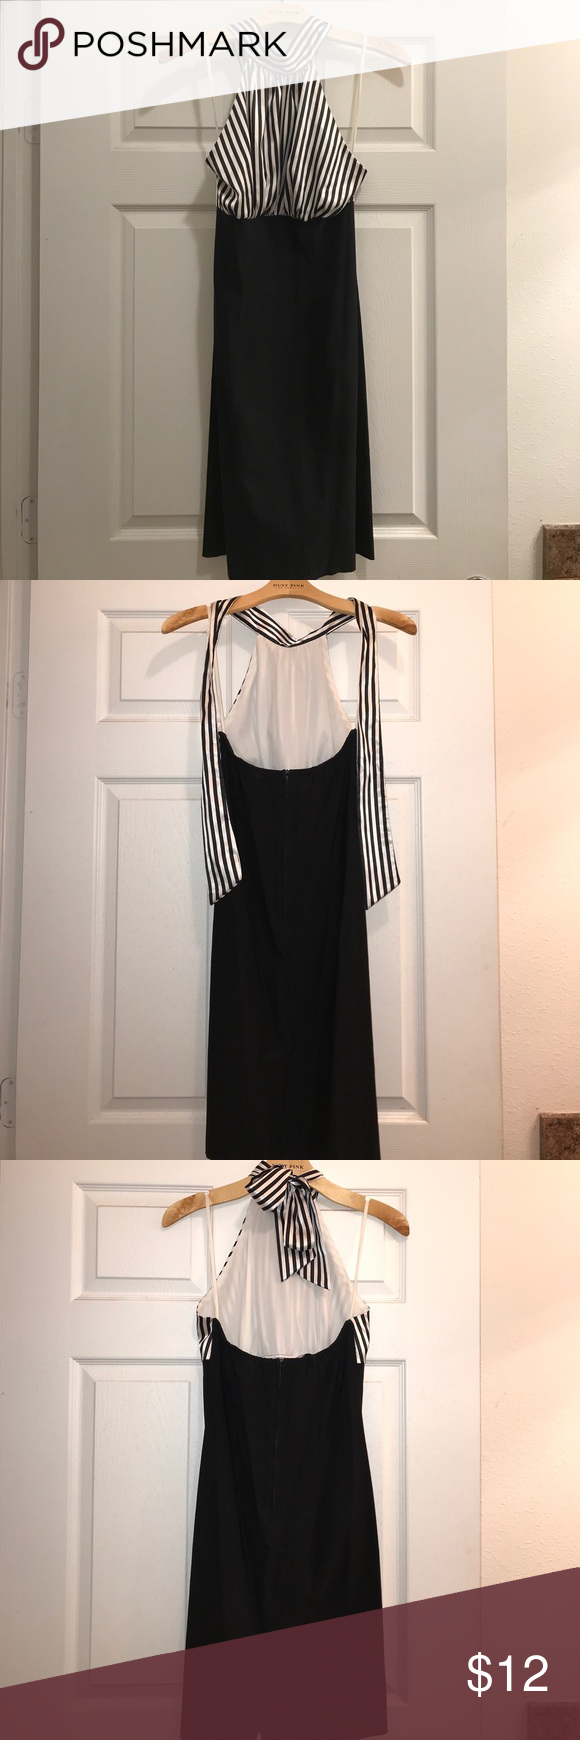 Black and White Dress This dress is your a head turner ! Used 1-2 times, in great condition. Well taken care of. Backless ties at neck and fitted. Great for date night or girls night out. Offers welcome. Smoke/pet free home. Fast shipping !! PSS USA Dresses Backless